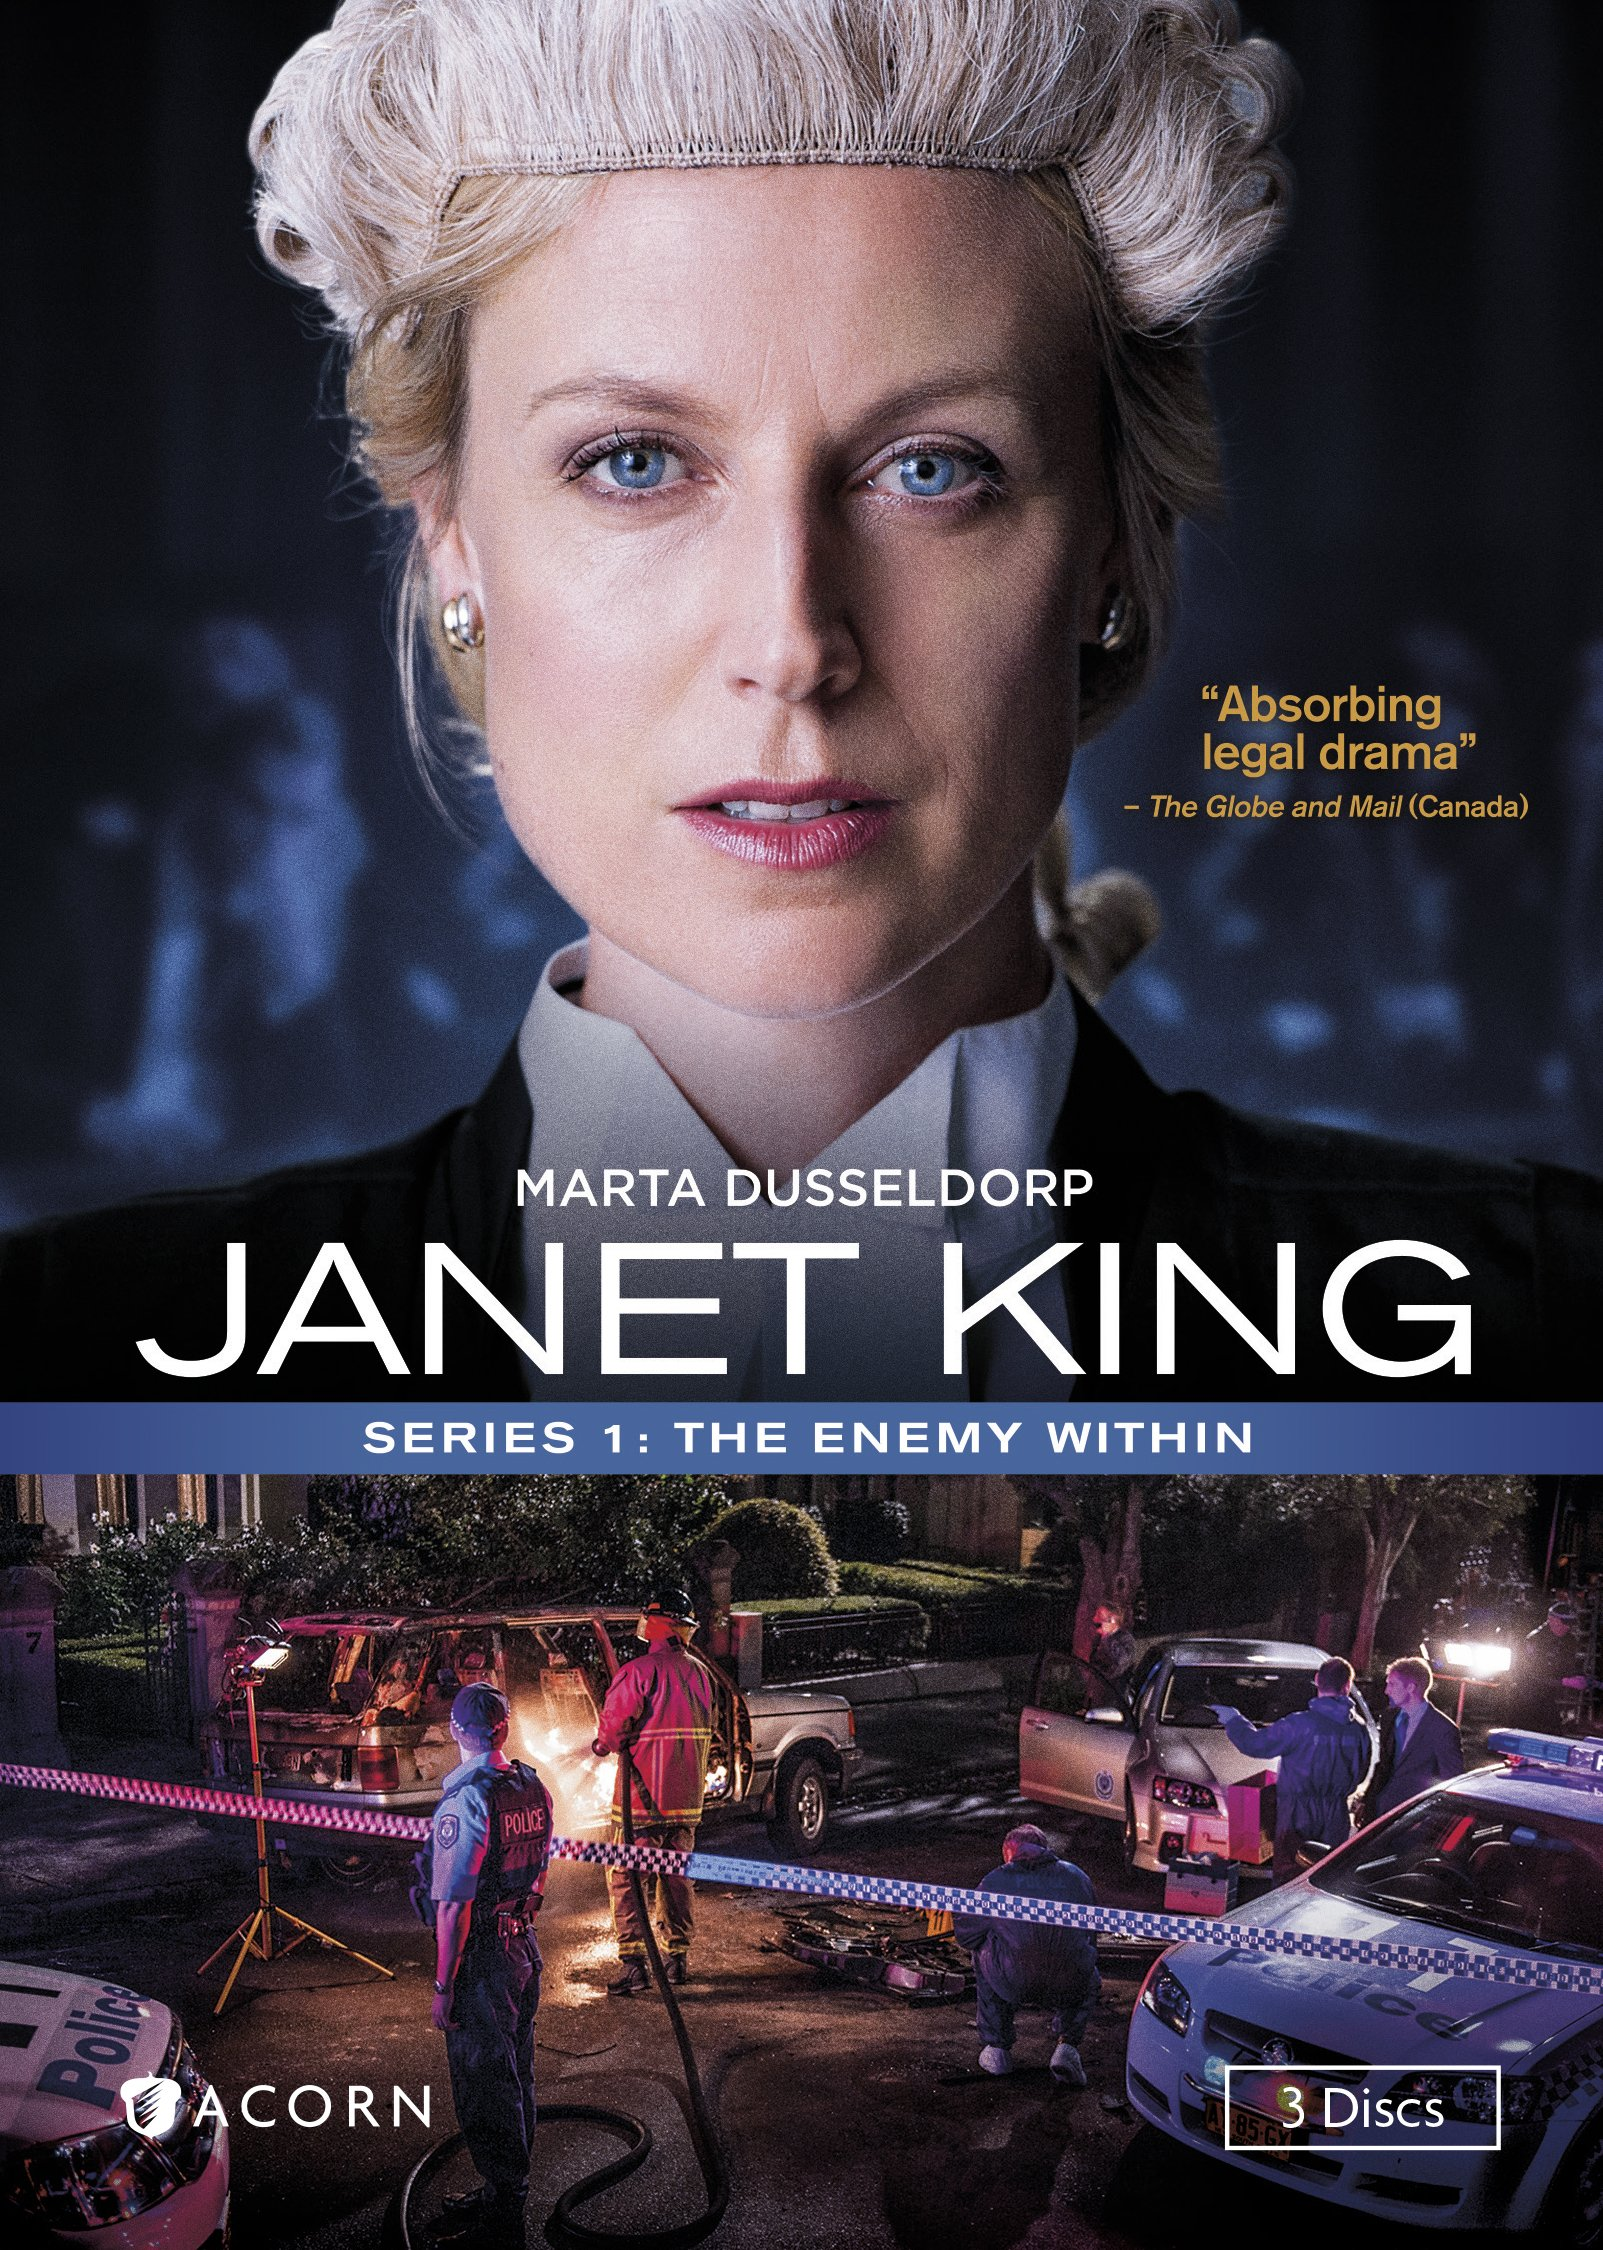 Janet King, Series 1: The Enemy Within